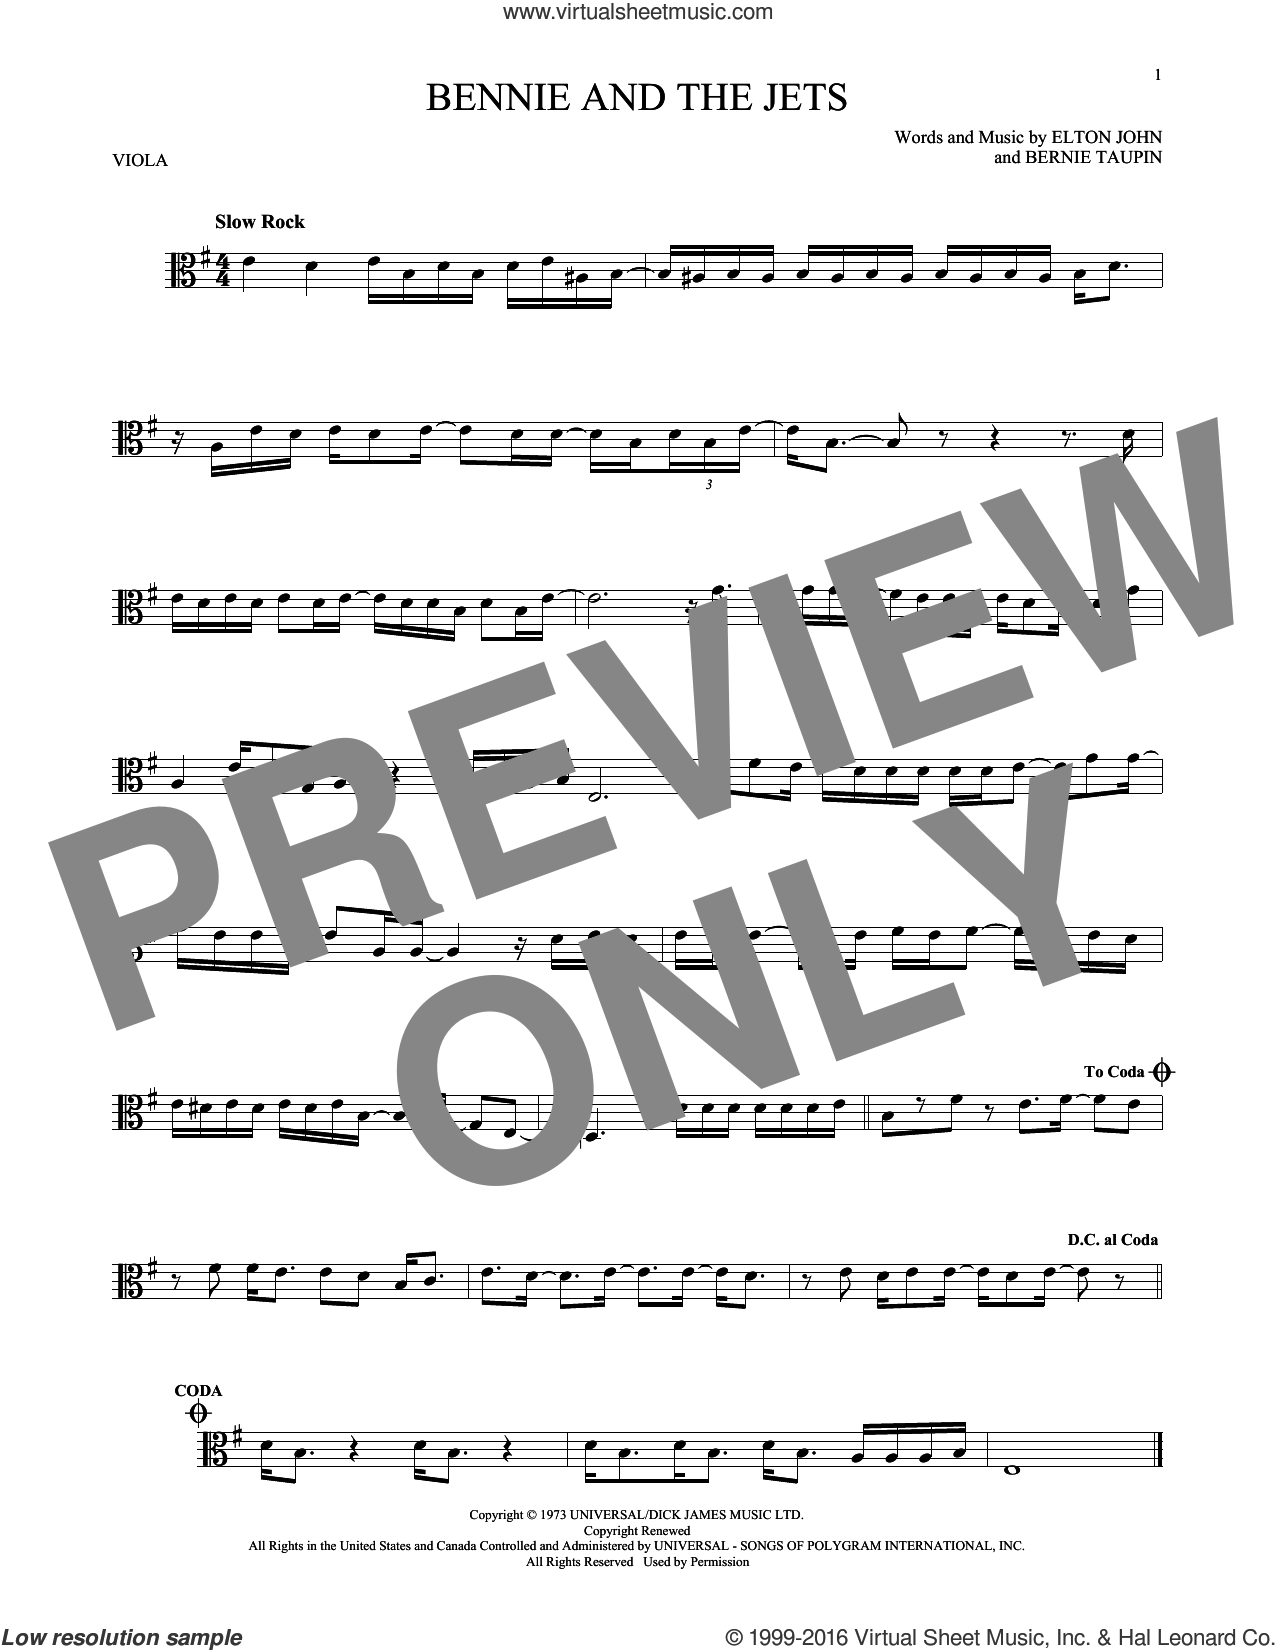 Bennie And The Jets sheet music for viola solo by Bernie Taupin and Elton John. Score Image Preview.